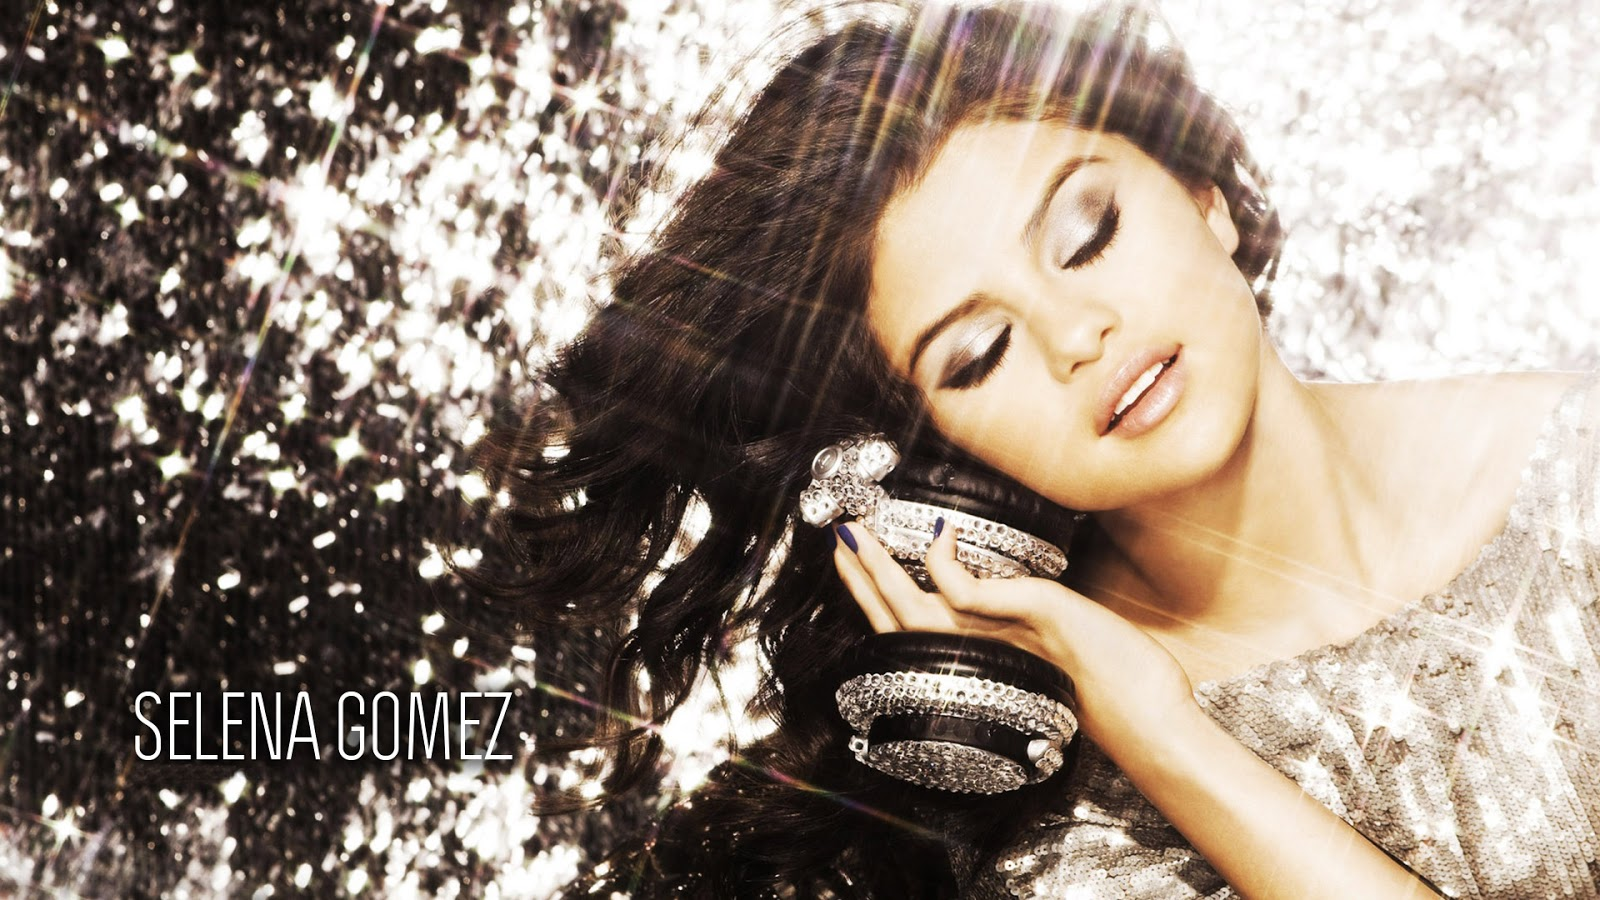 Selena Gomez HD Wallpaper